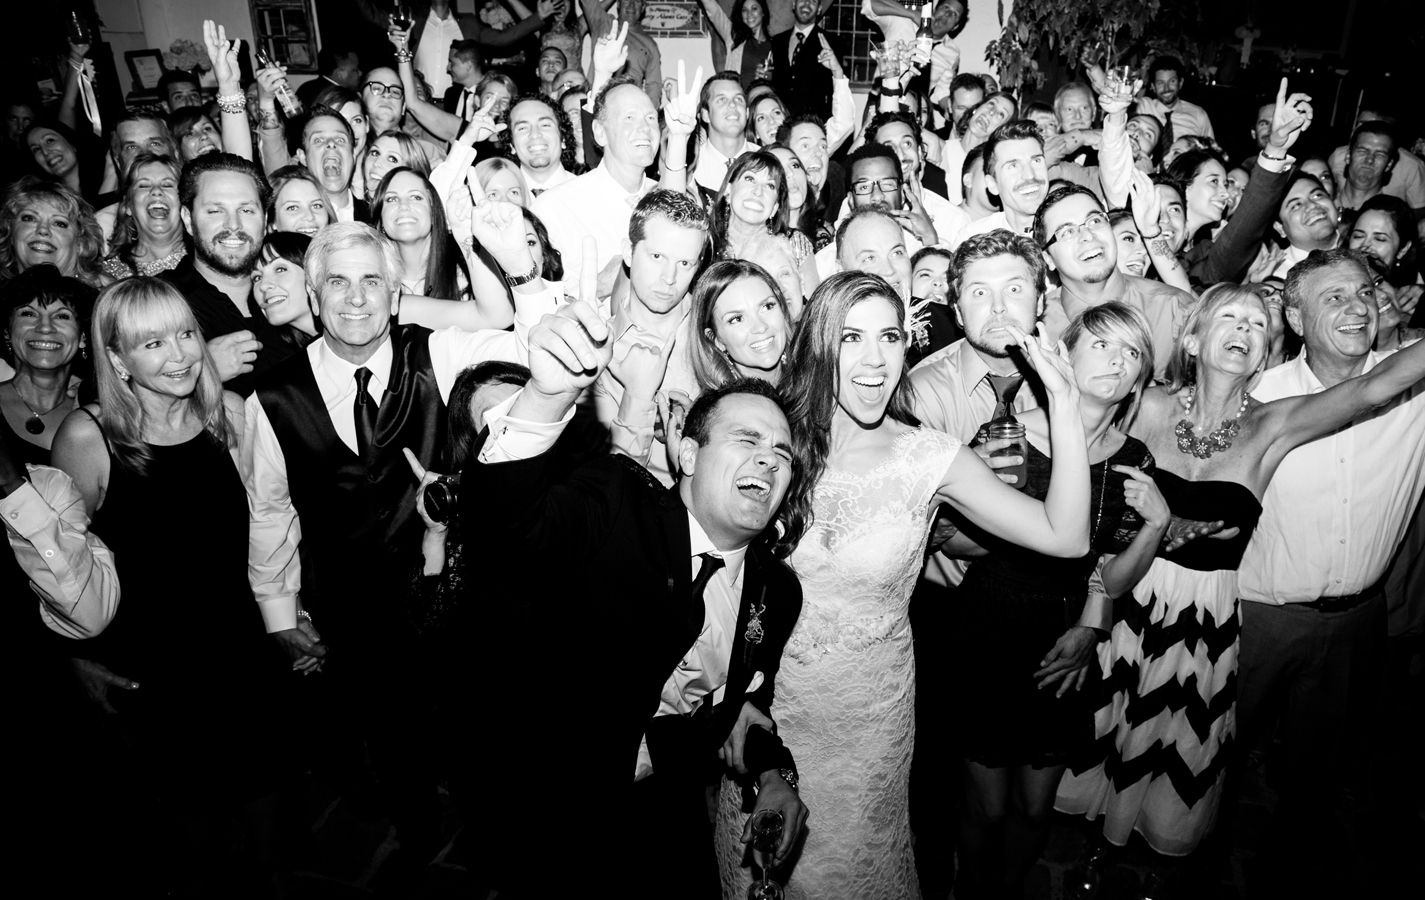 www.ostaraphotography.com, ©Ostara Photography, San Juan Capistrano, The Villa in San Juan Capistrano, Spanish Style Wedding, group shot, dance party, outdoor reception, bride and groom, wedding party, weddings guests